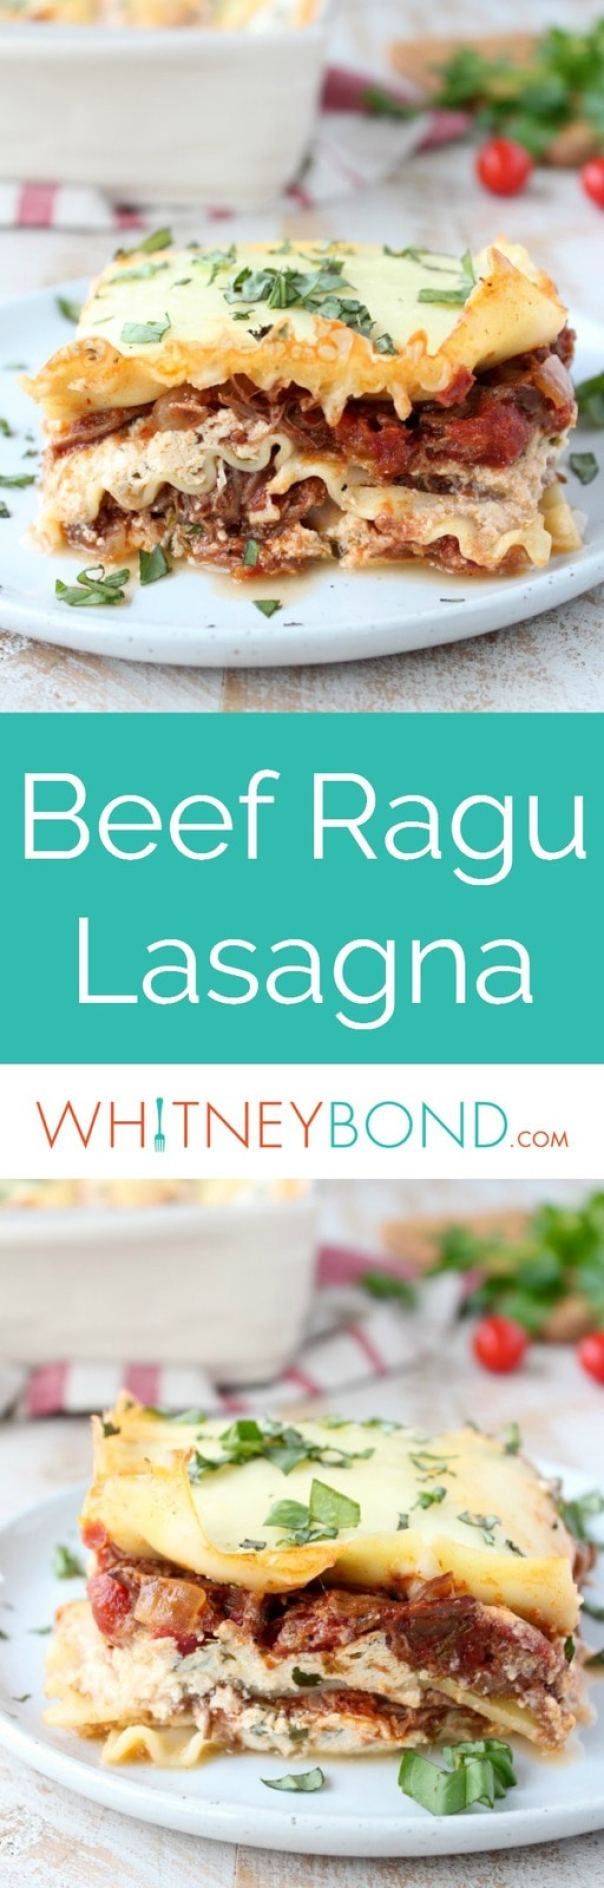 Simple slow cooked beef ragu is layered with creamy ricotta cheese, lasagna noodles and mozzarella cheese in the most delicious lasagna recipe ever!